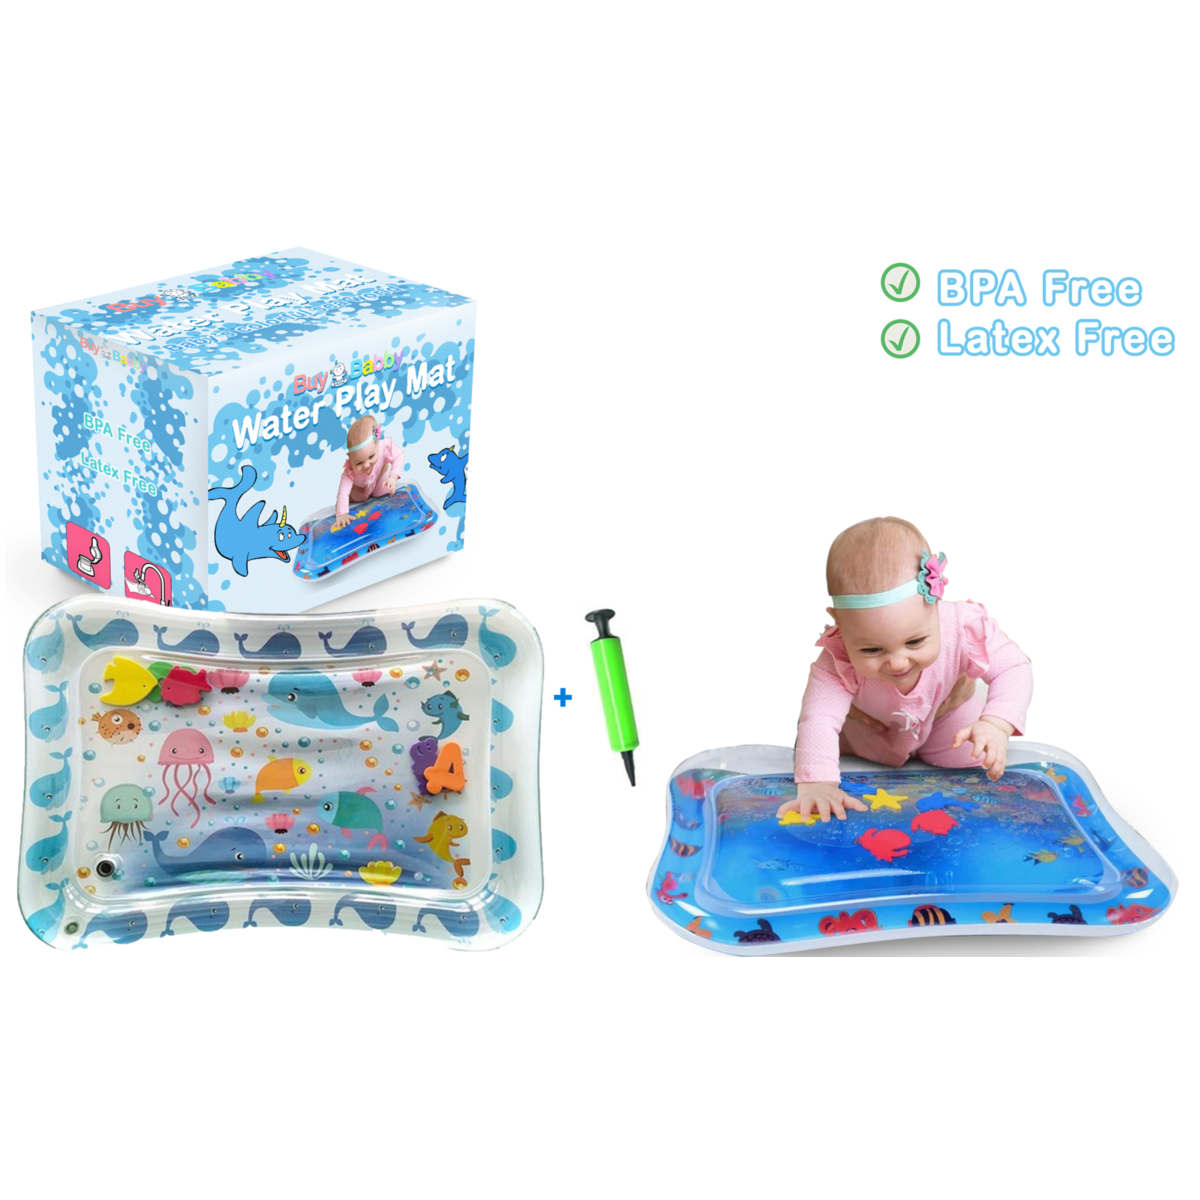 Splashin'kids Inflatable Tummy Time Premium Water mat Infants and Toddlers Growth Brain Development BPA-Free Baby Toys